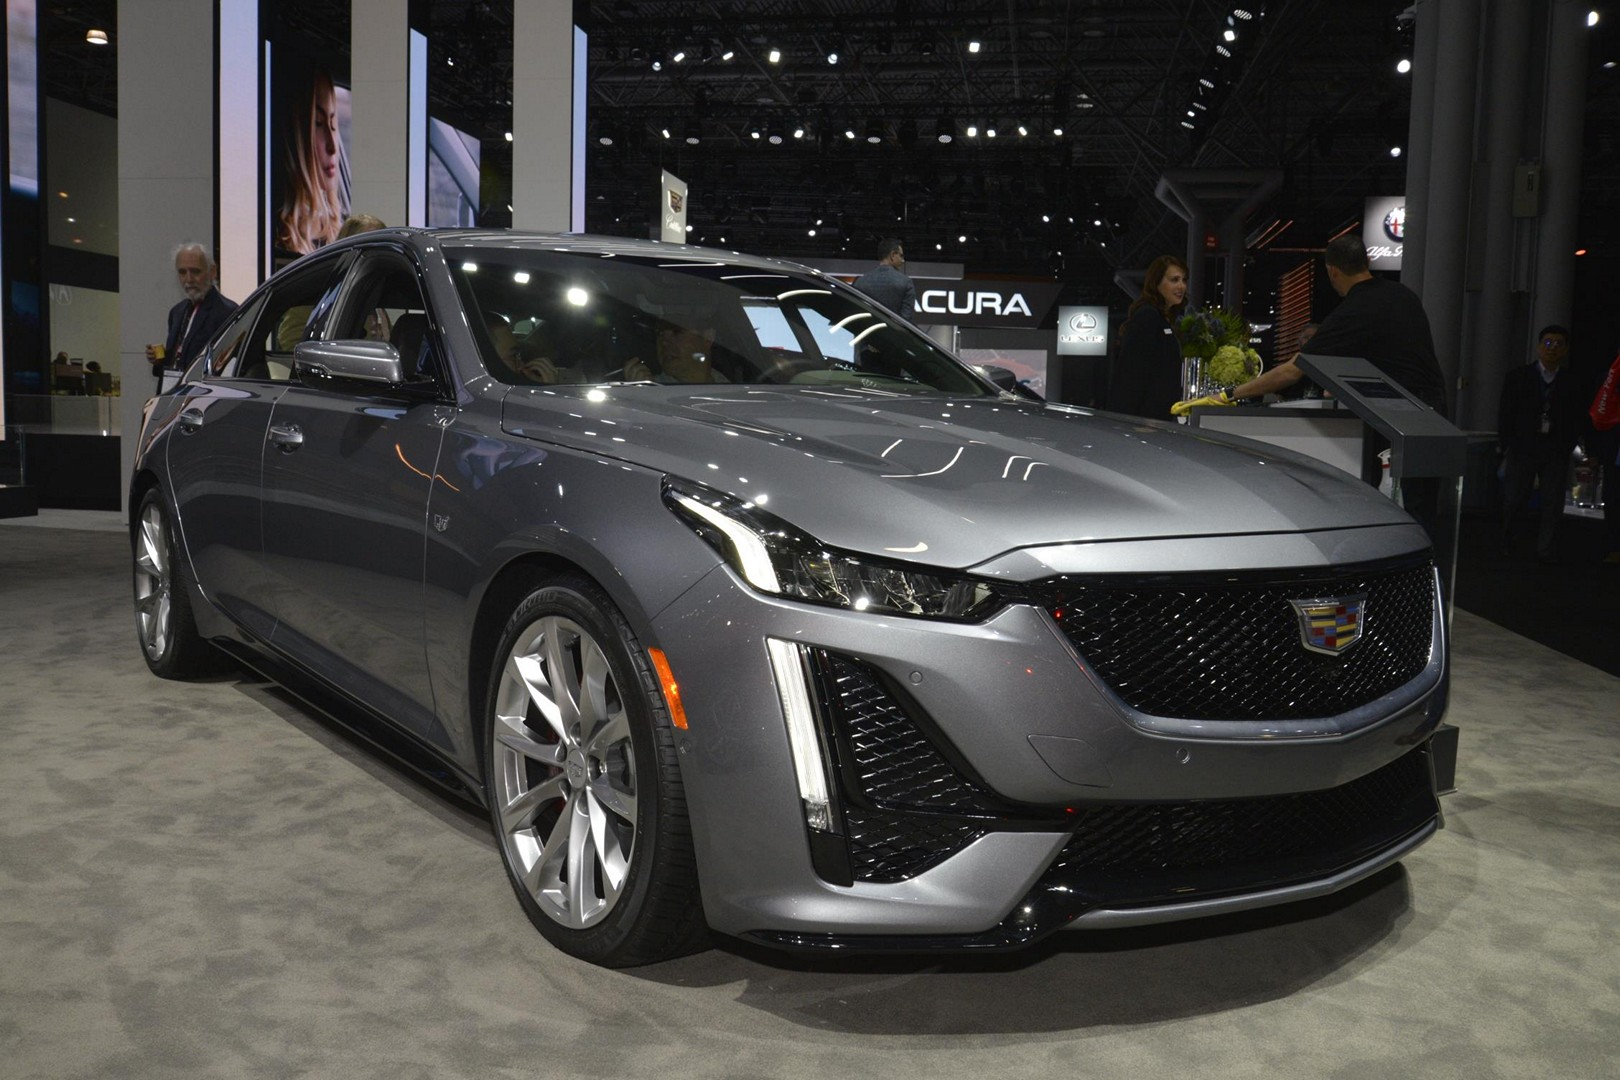 2020 Cadillac Ct5 Is Confusing In Many Ways At New York Auto Show